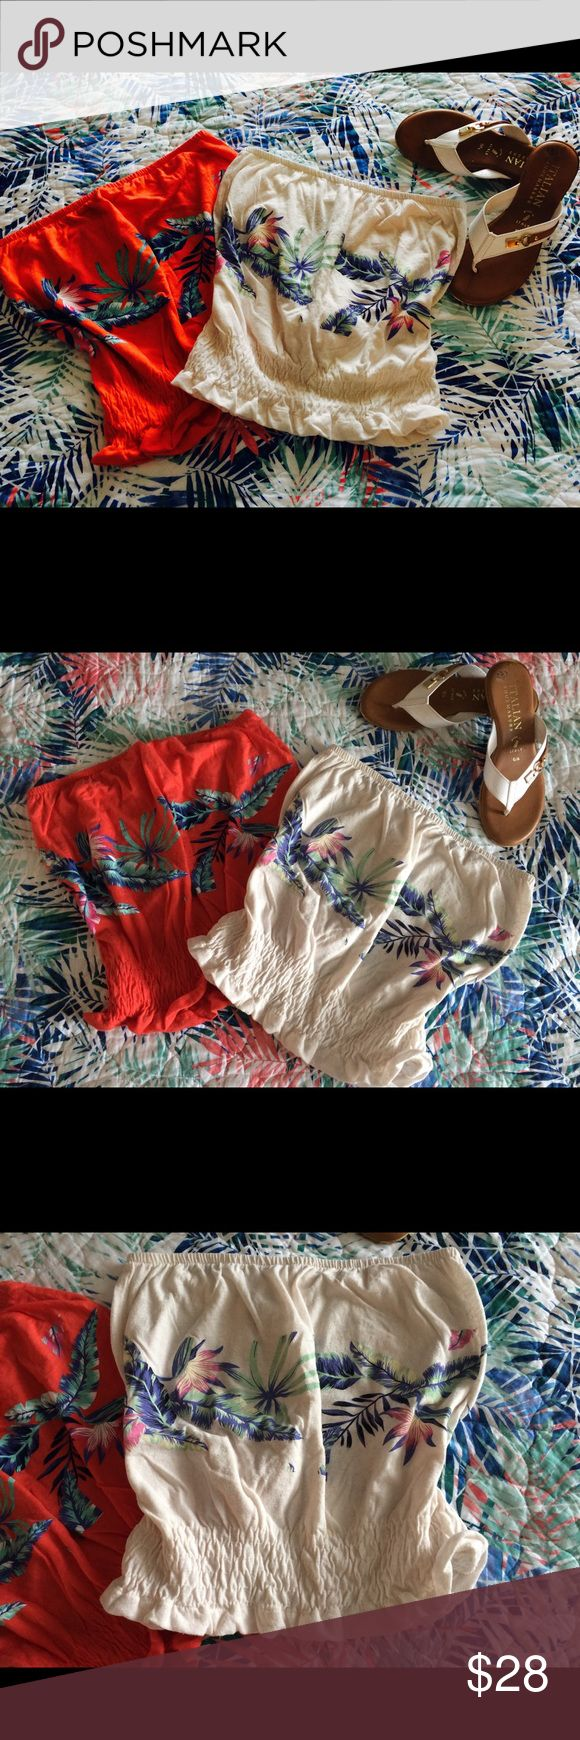 NWOT Roxy Palm Leaf Tube Top Bundle NWOT Roxy tune top bundle featuring a gorgeous palm leaf print. These are sold out from Nordstroms and are in perfect condition. They are both alluring and cute and can be paired with cutoffs for a casual look or a flowy skirt for a night out on the beach. One comes in a beautiful cream color with the other in a bright orange coral hue. You will love walking the ocean sands or mountain walk ways with these versatile tops. Do not miss out on these gorgeous…